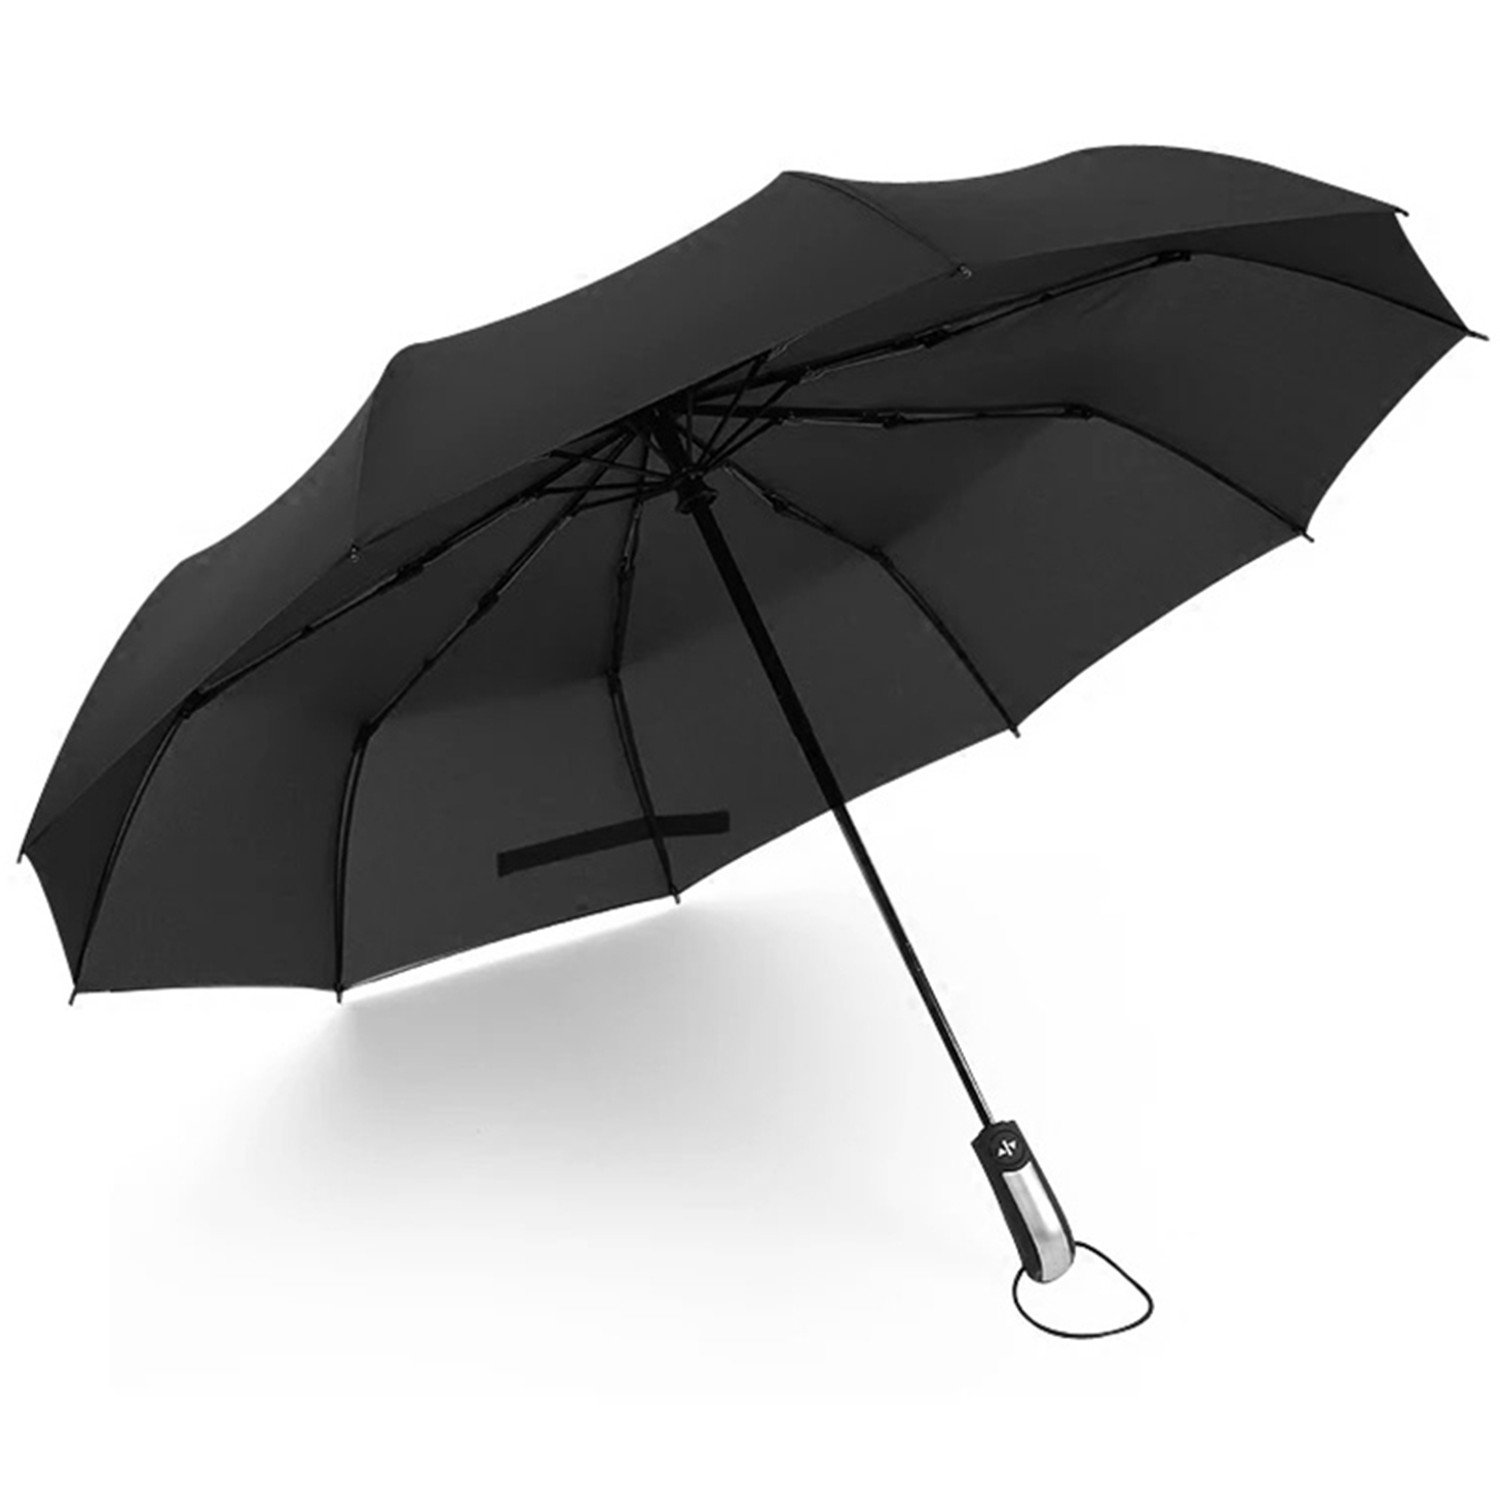 Amazon.com : Reinhar Automatic Folding Umbrella Male Parasol Large Paraguas Windproof Black Women Umbrellas rain women parapluie : Sports & Outdoors